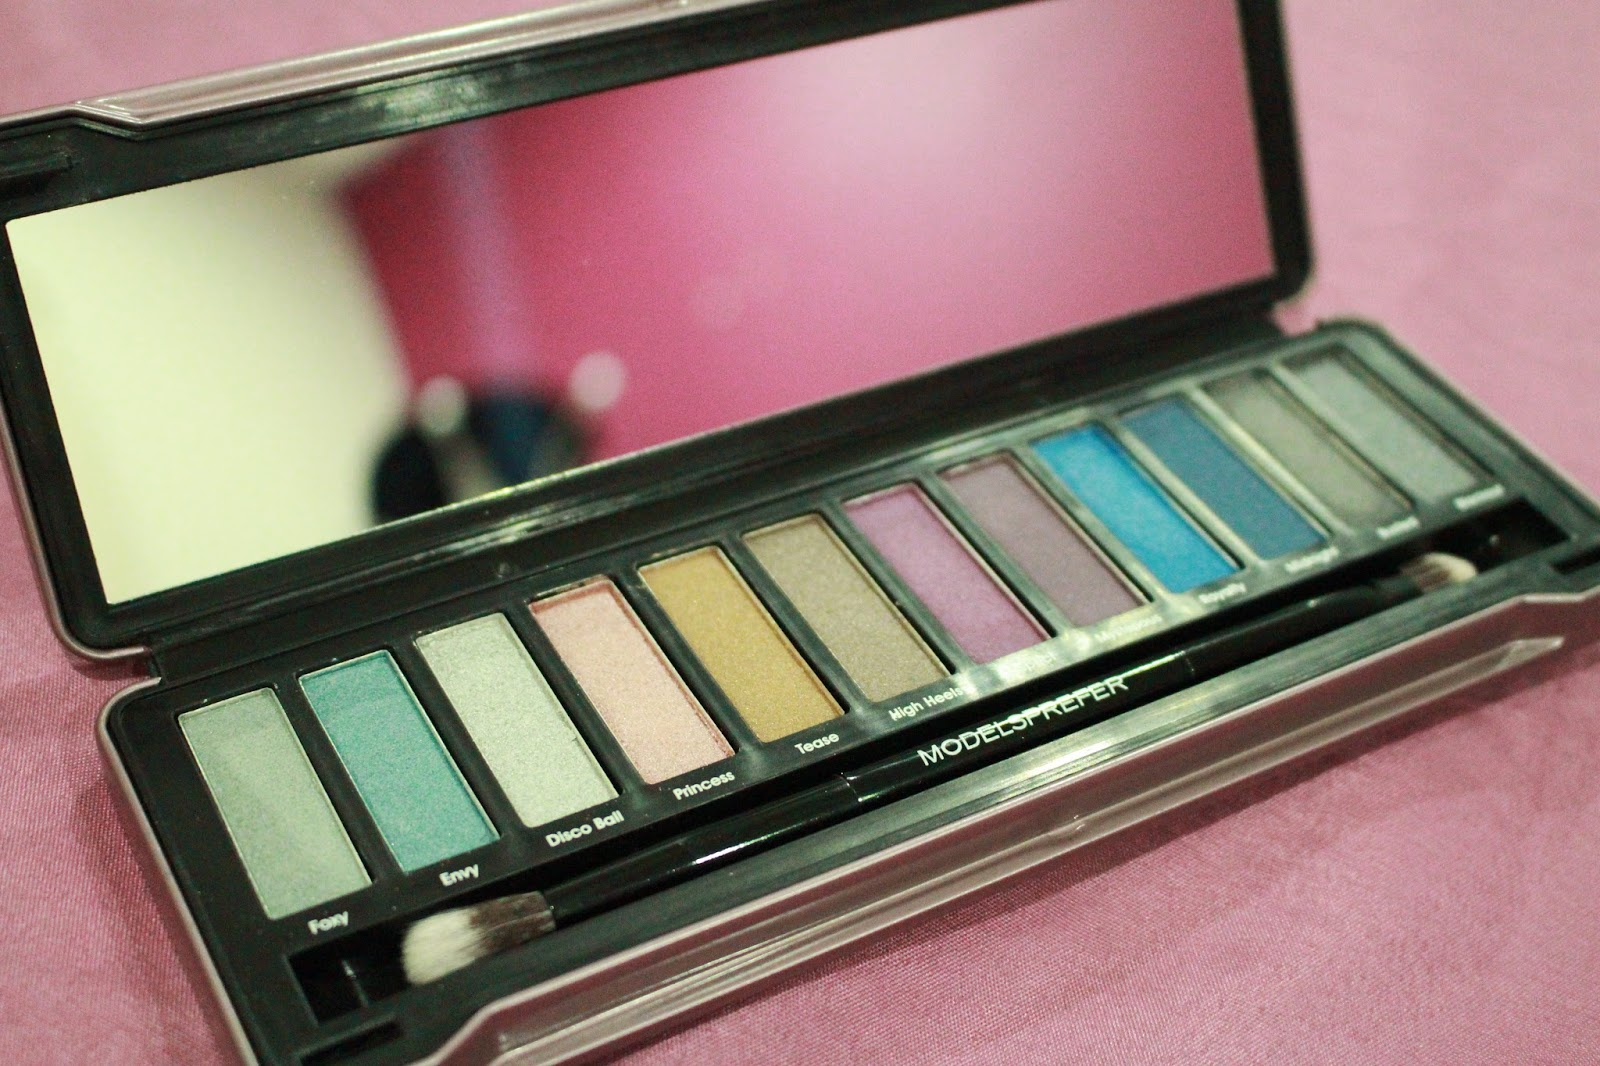 Models Prefer Limited Edition 'Shadows' Holiday Palettes 2014 (Party Glam)